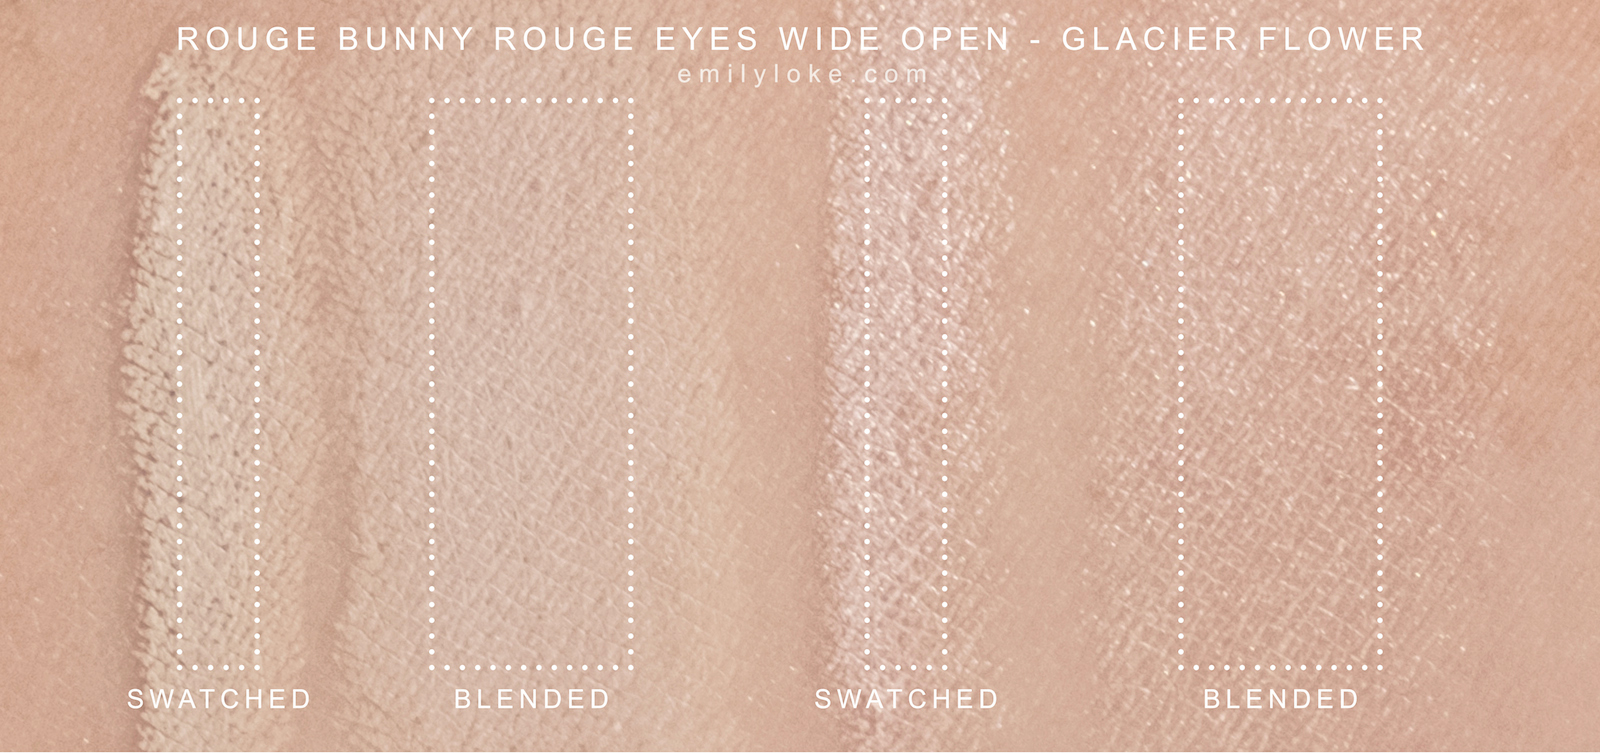 Rouge Bunny Rouge Glacier Flower Swatches